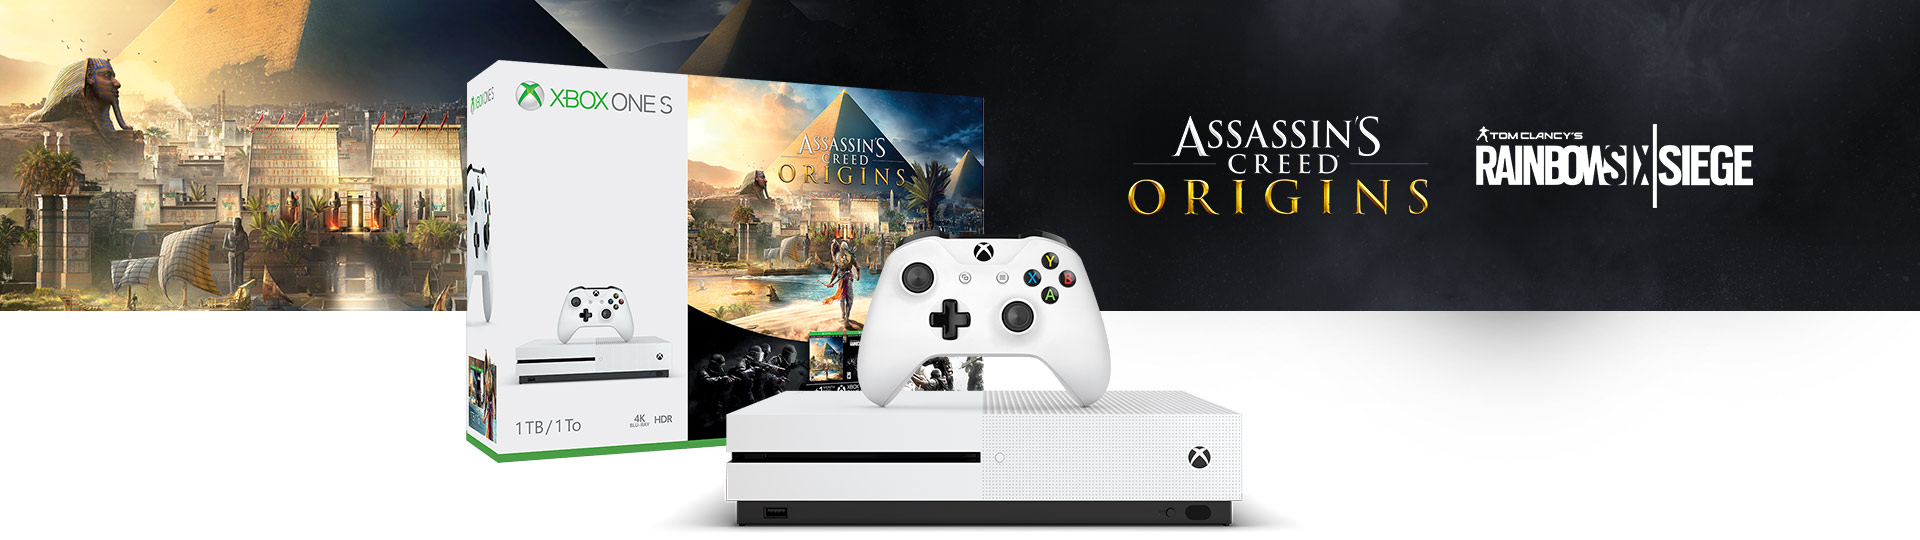 Πακέτο Xbox One S Assassin's Creed: Πακέτο Origins Bonus (1TB)